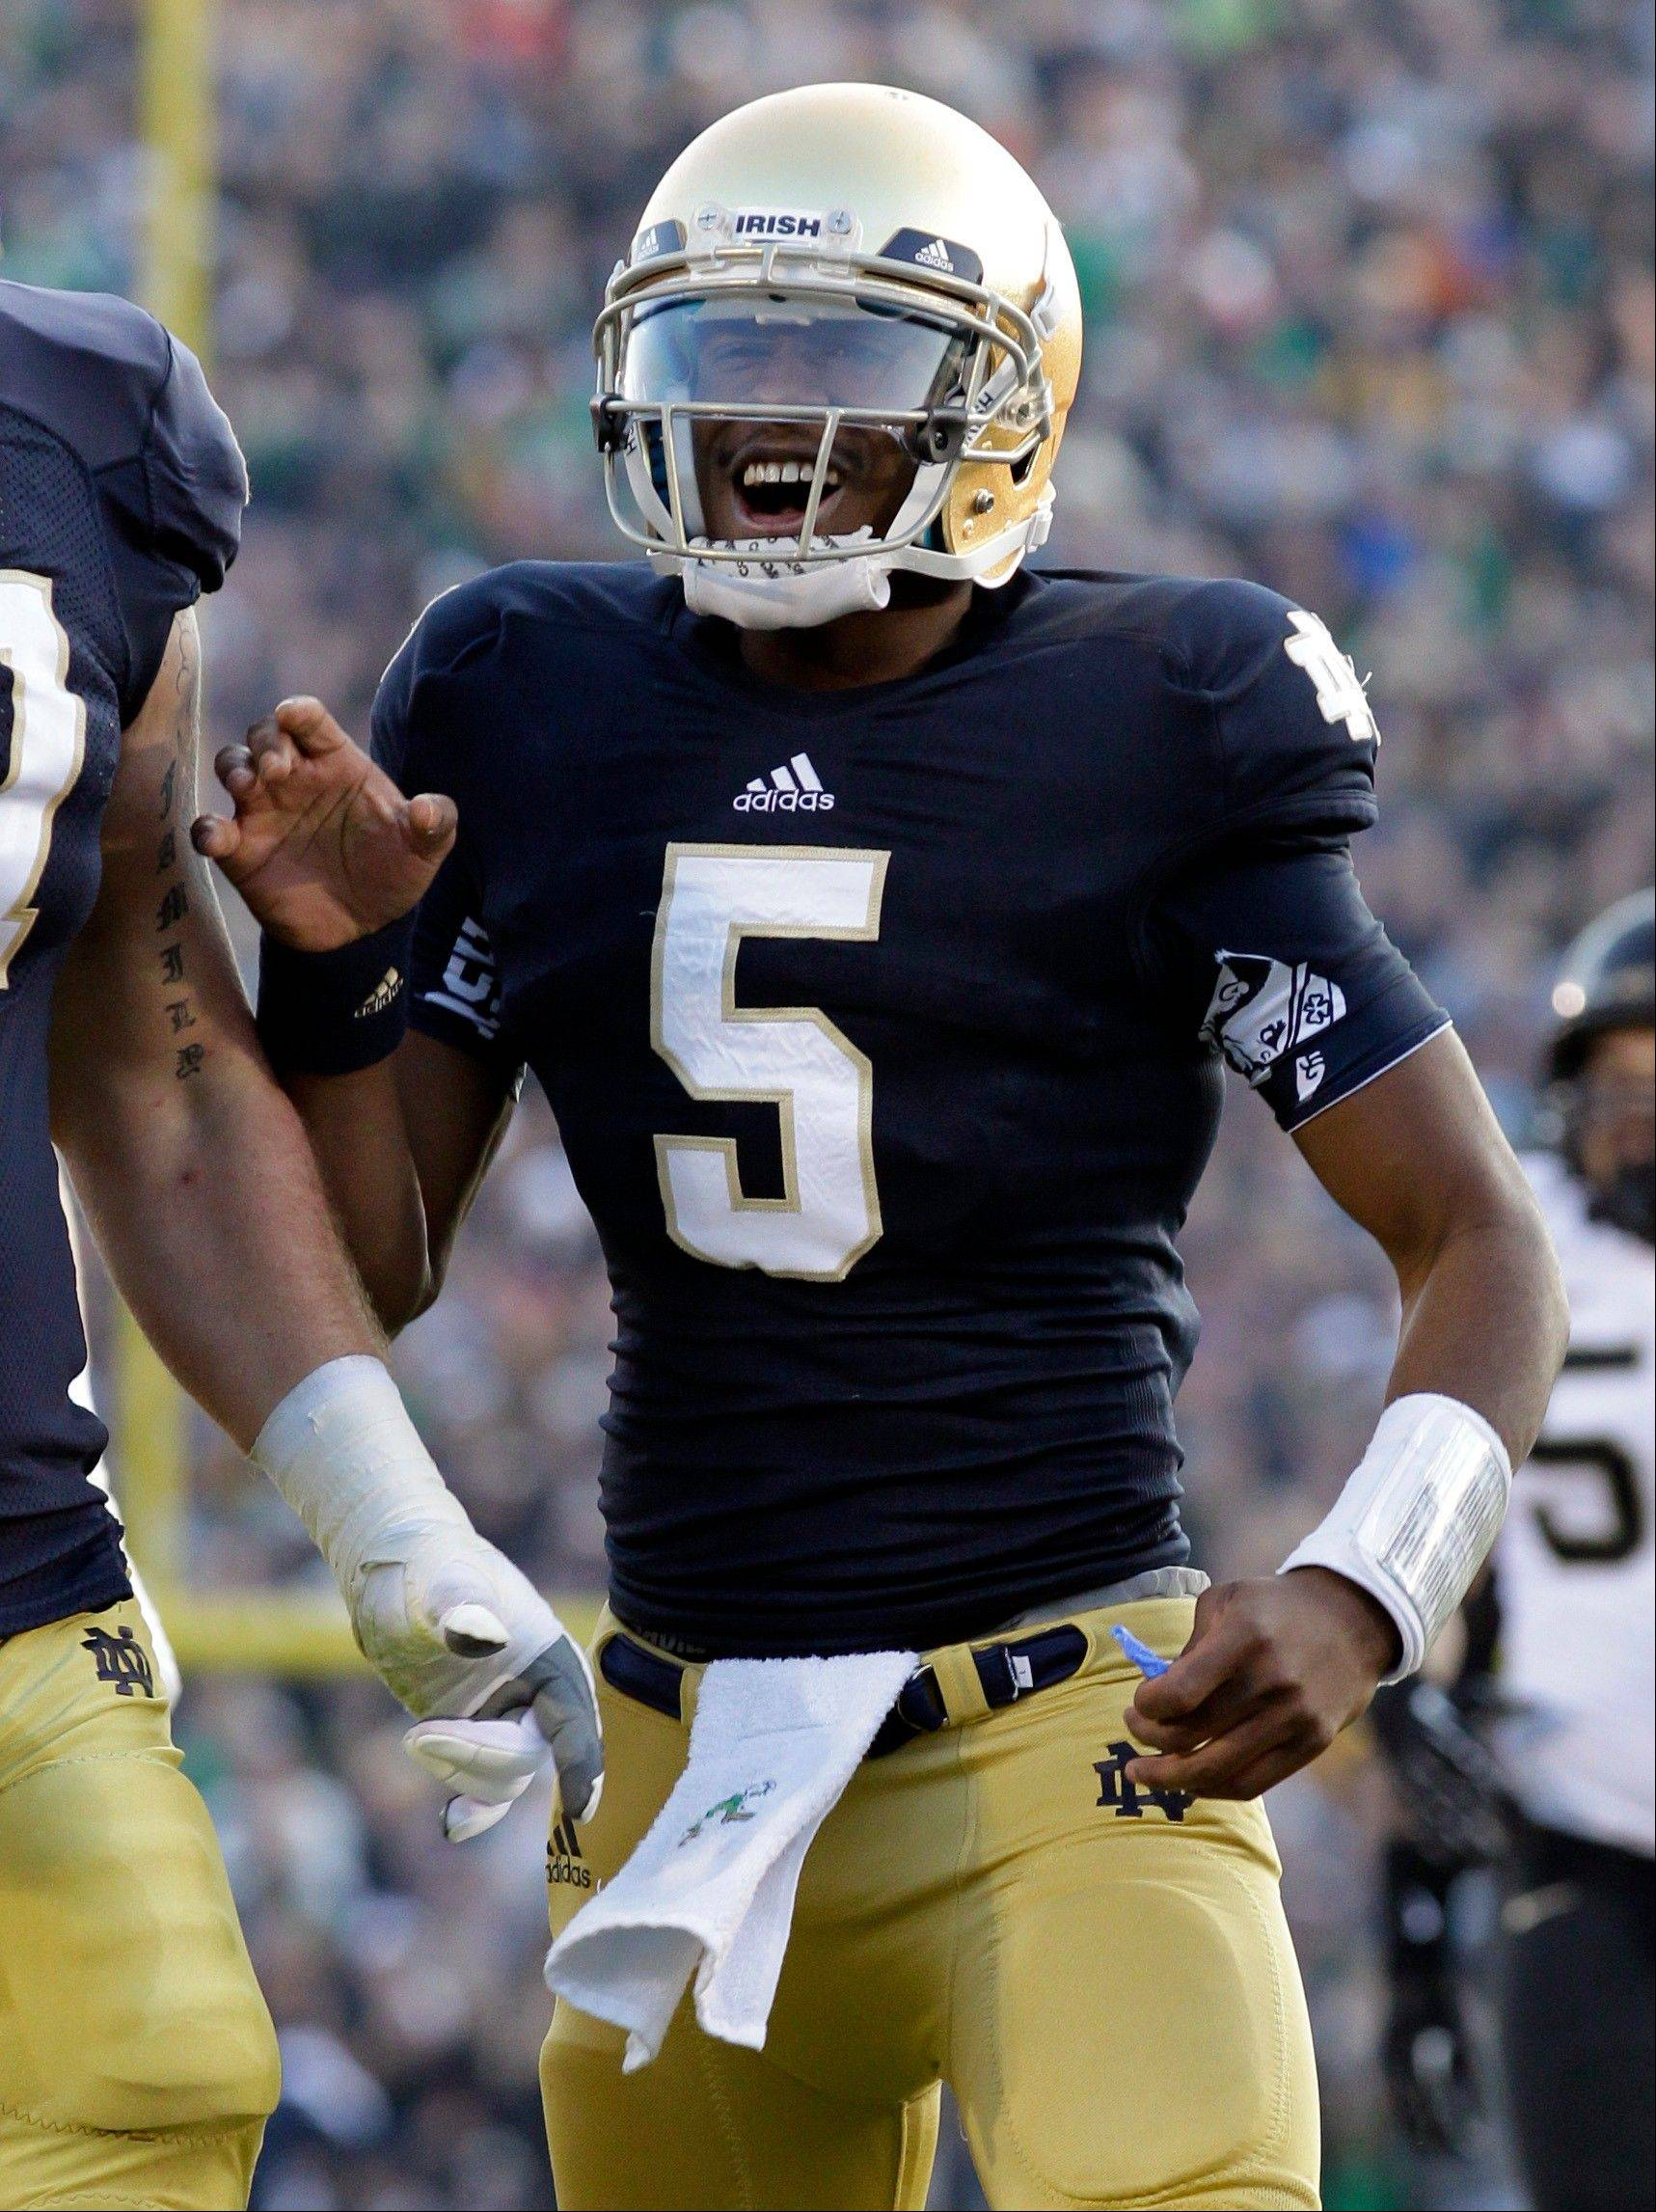 Notre Dame quarterback Everett Golson and his Fighting Irish teammates are favored to beat Southern California on Saturday night and finsih their regular season unbeaten.